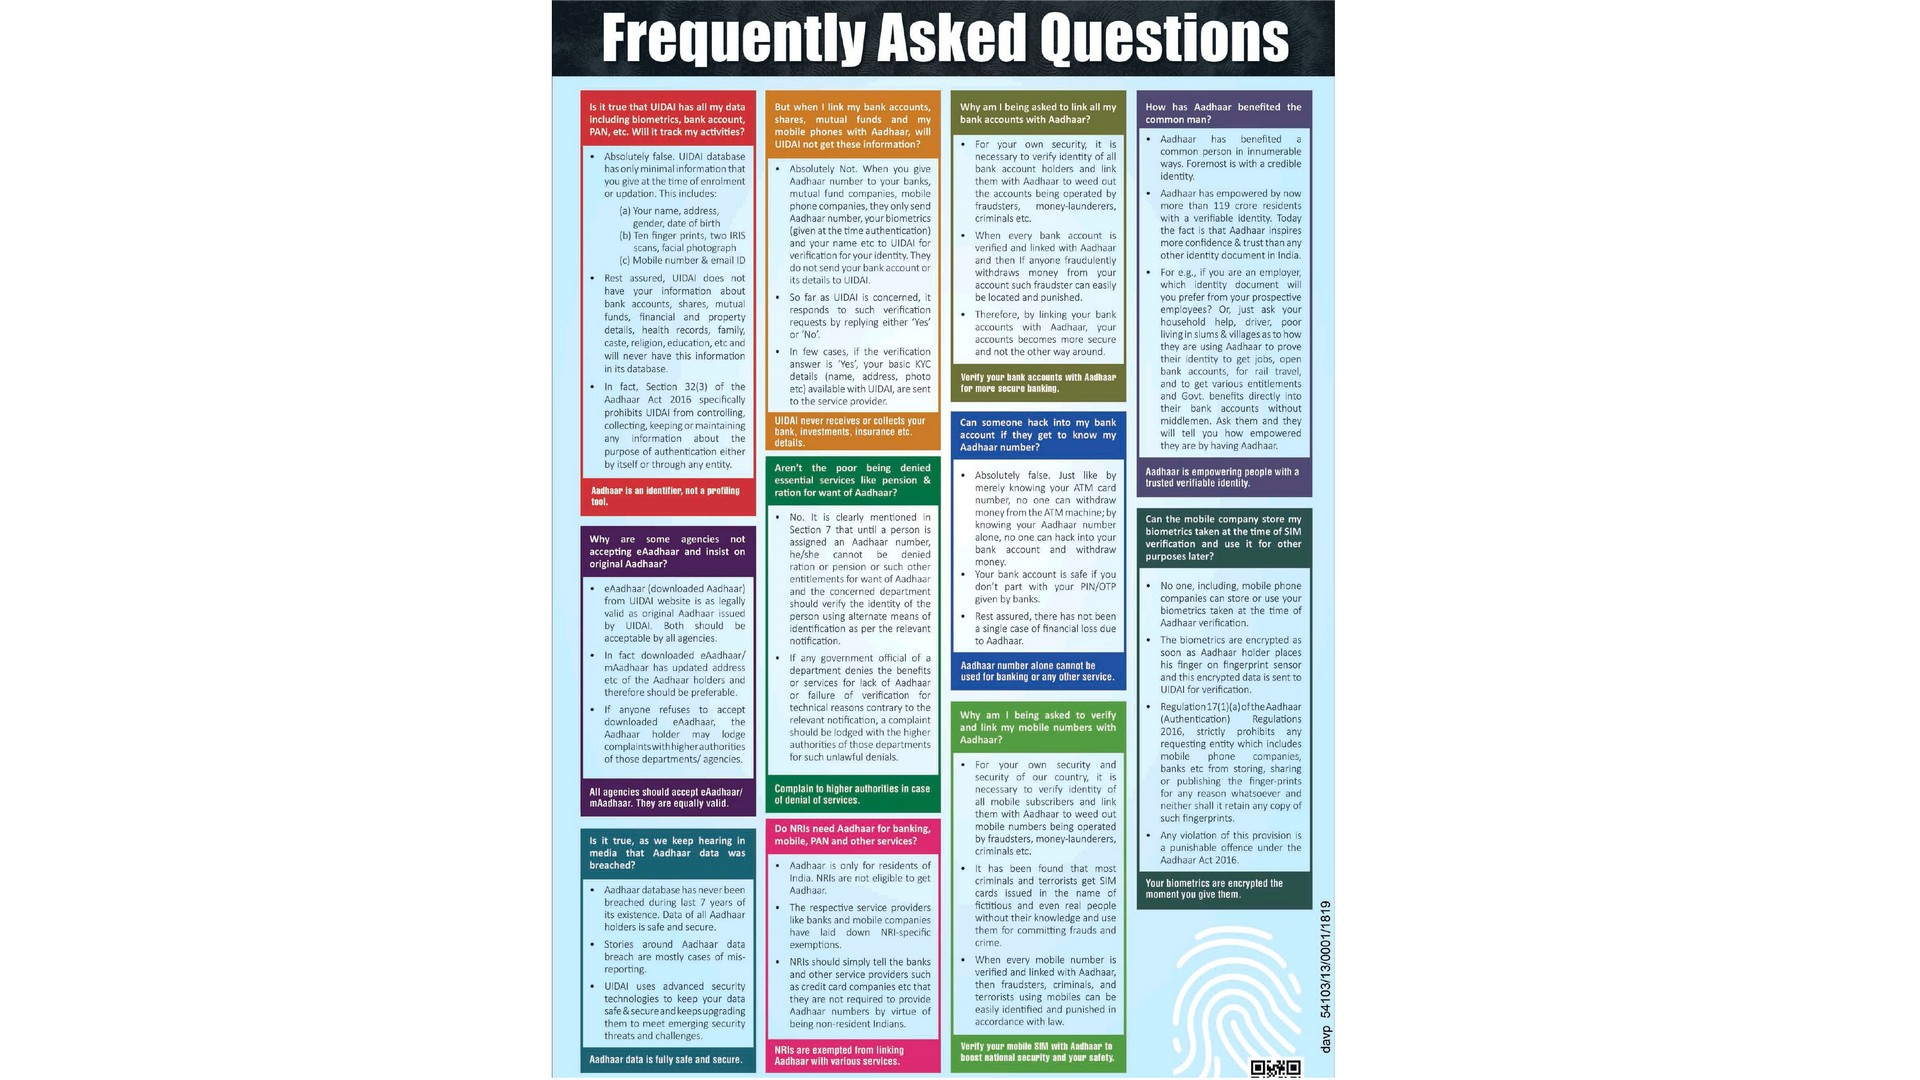 UIDAI's FAQs published in national dailies present a very